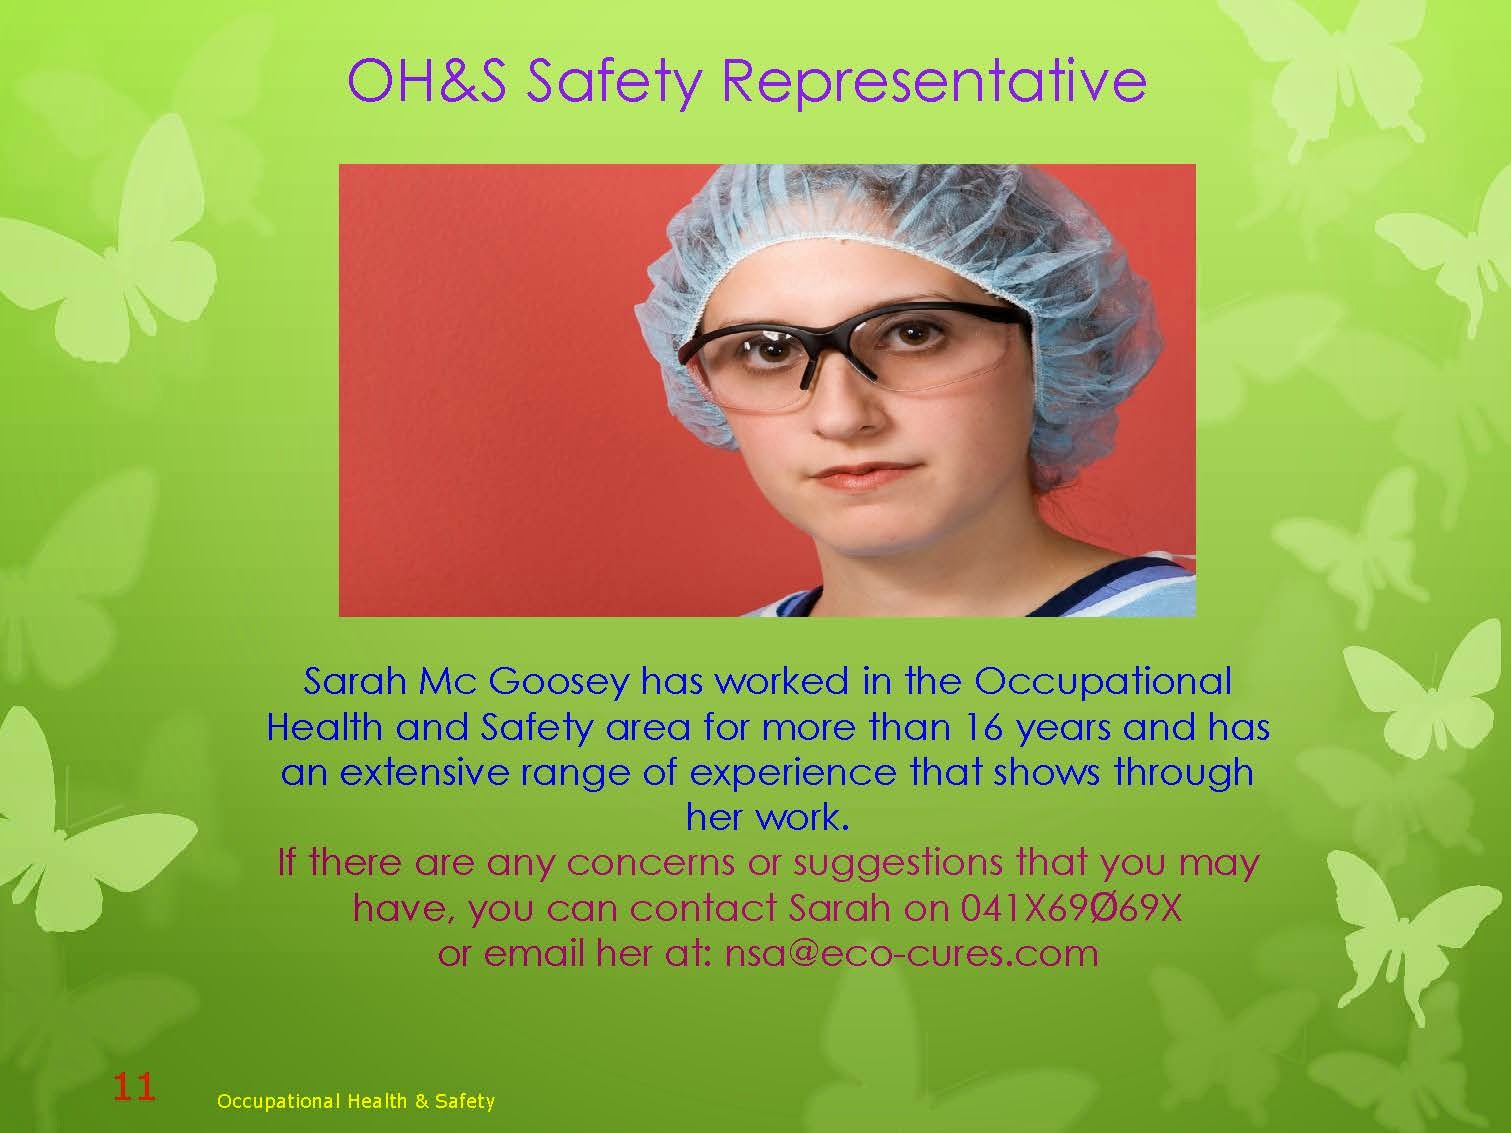 SEXY OCCUPATIONAL HEALTH AND SAFETY